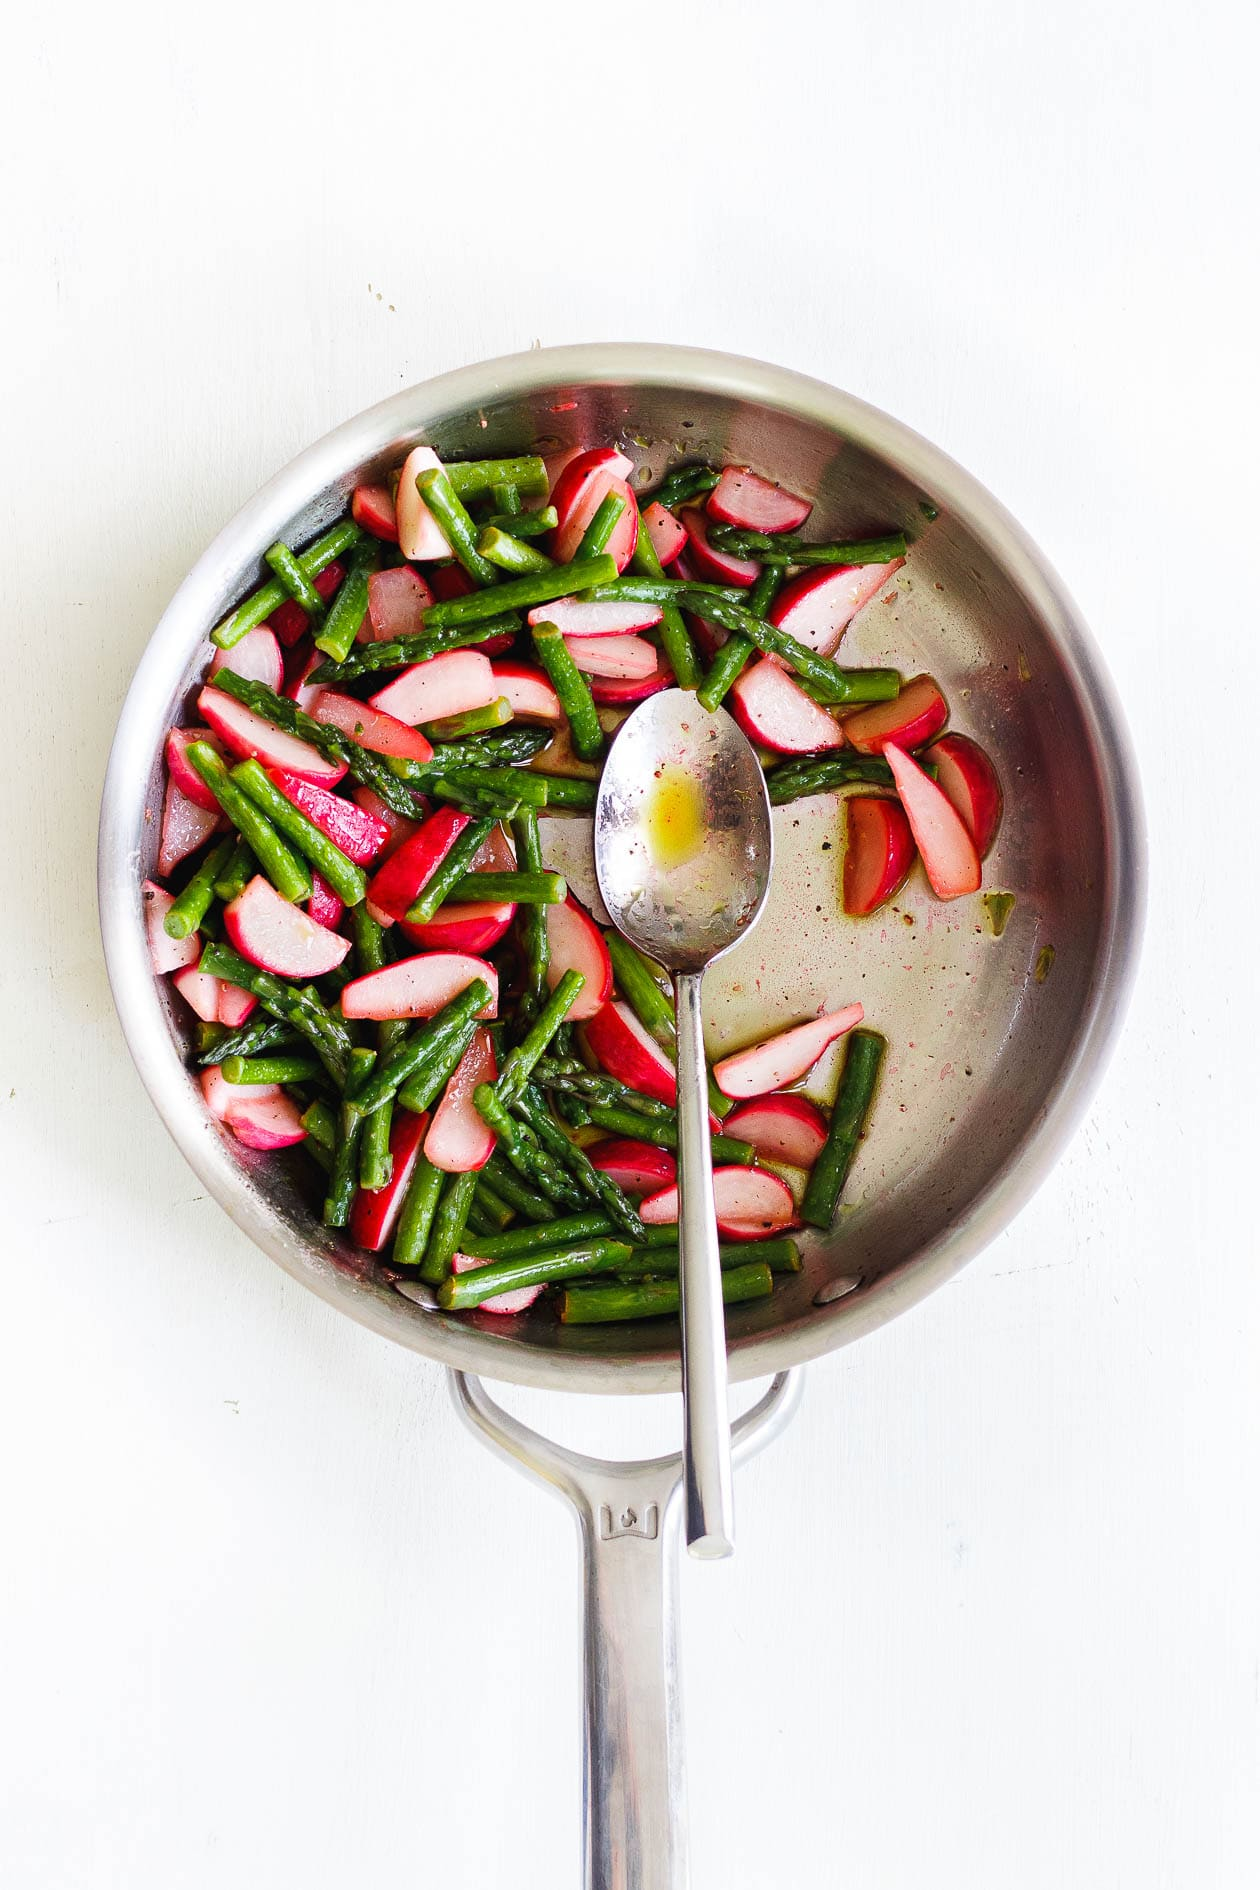 asparagus and radishes in a saute pan